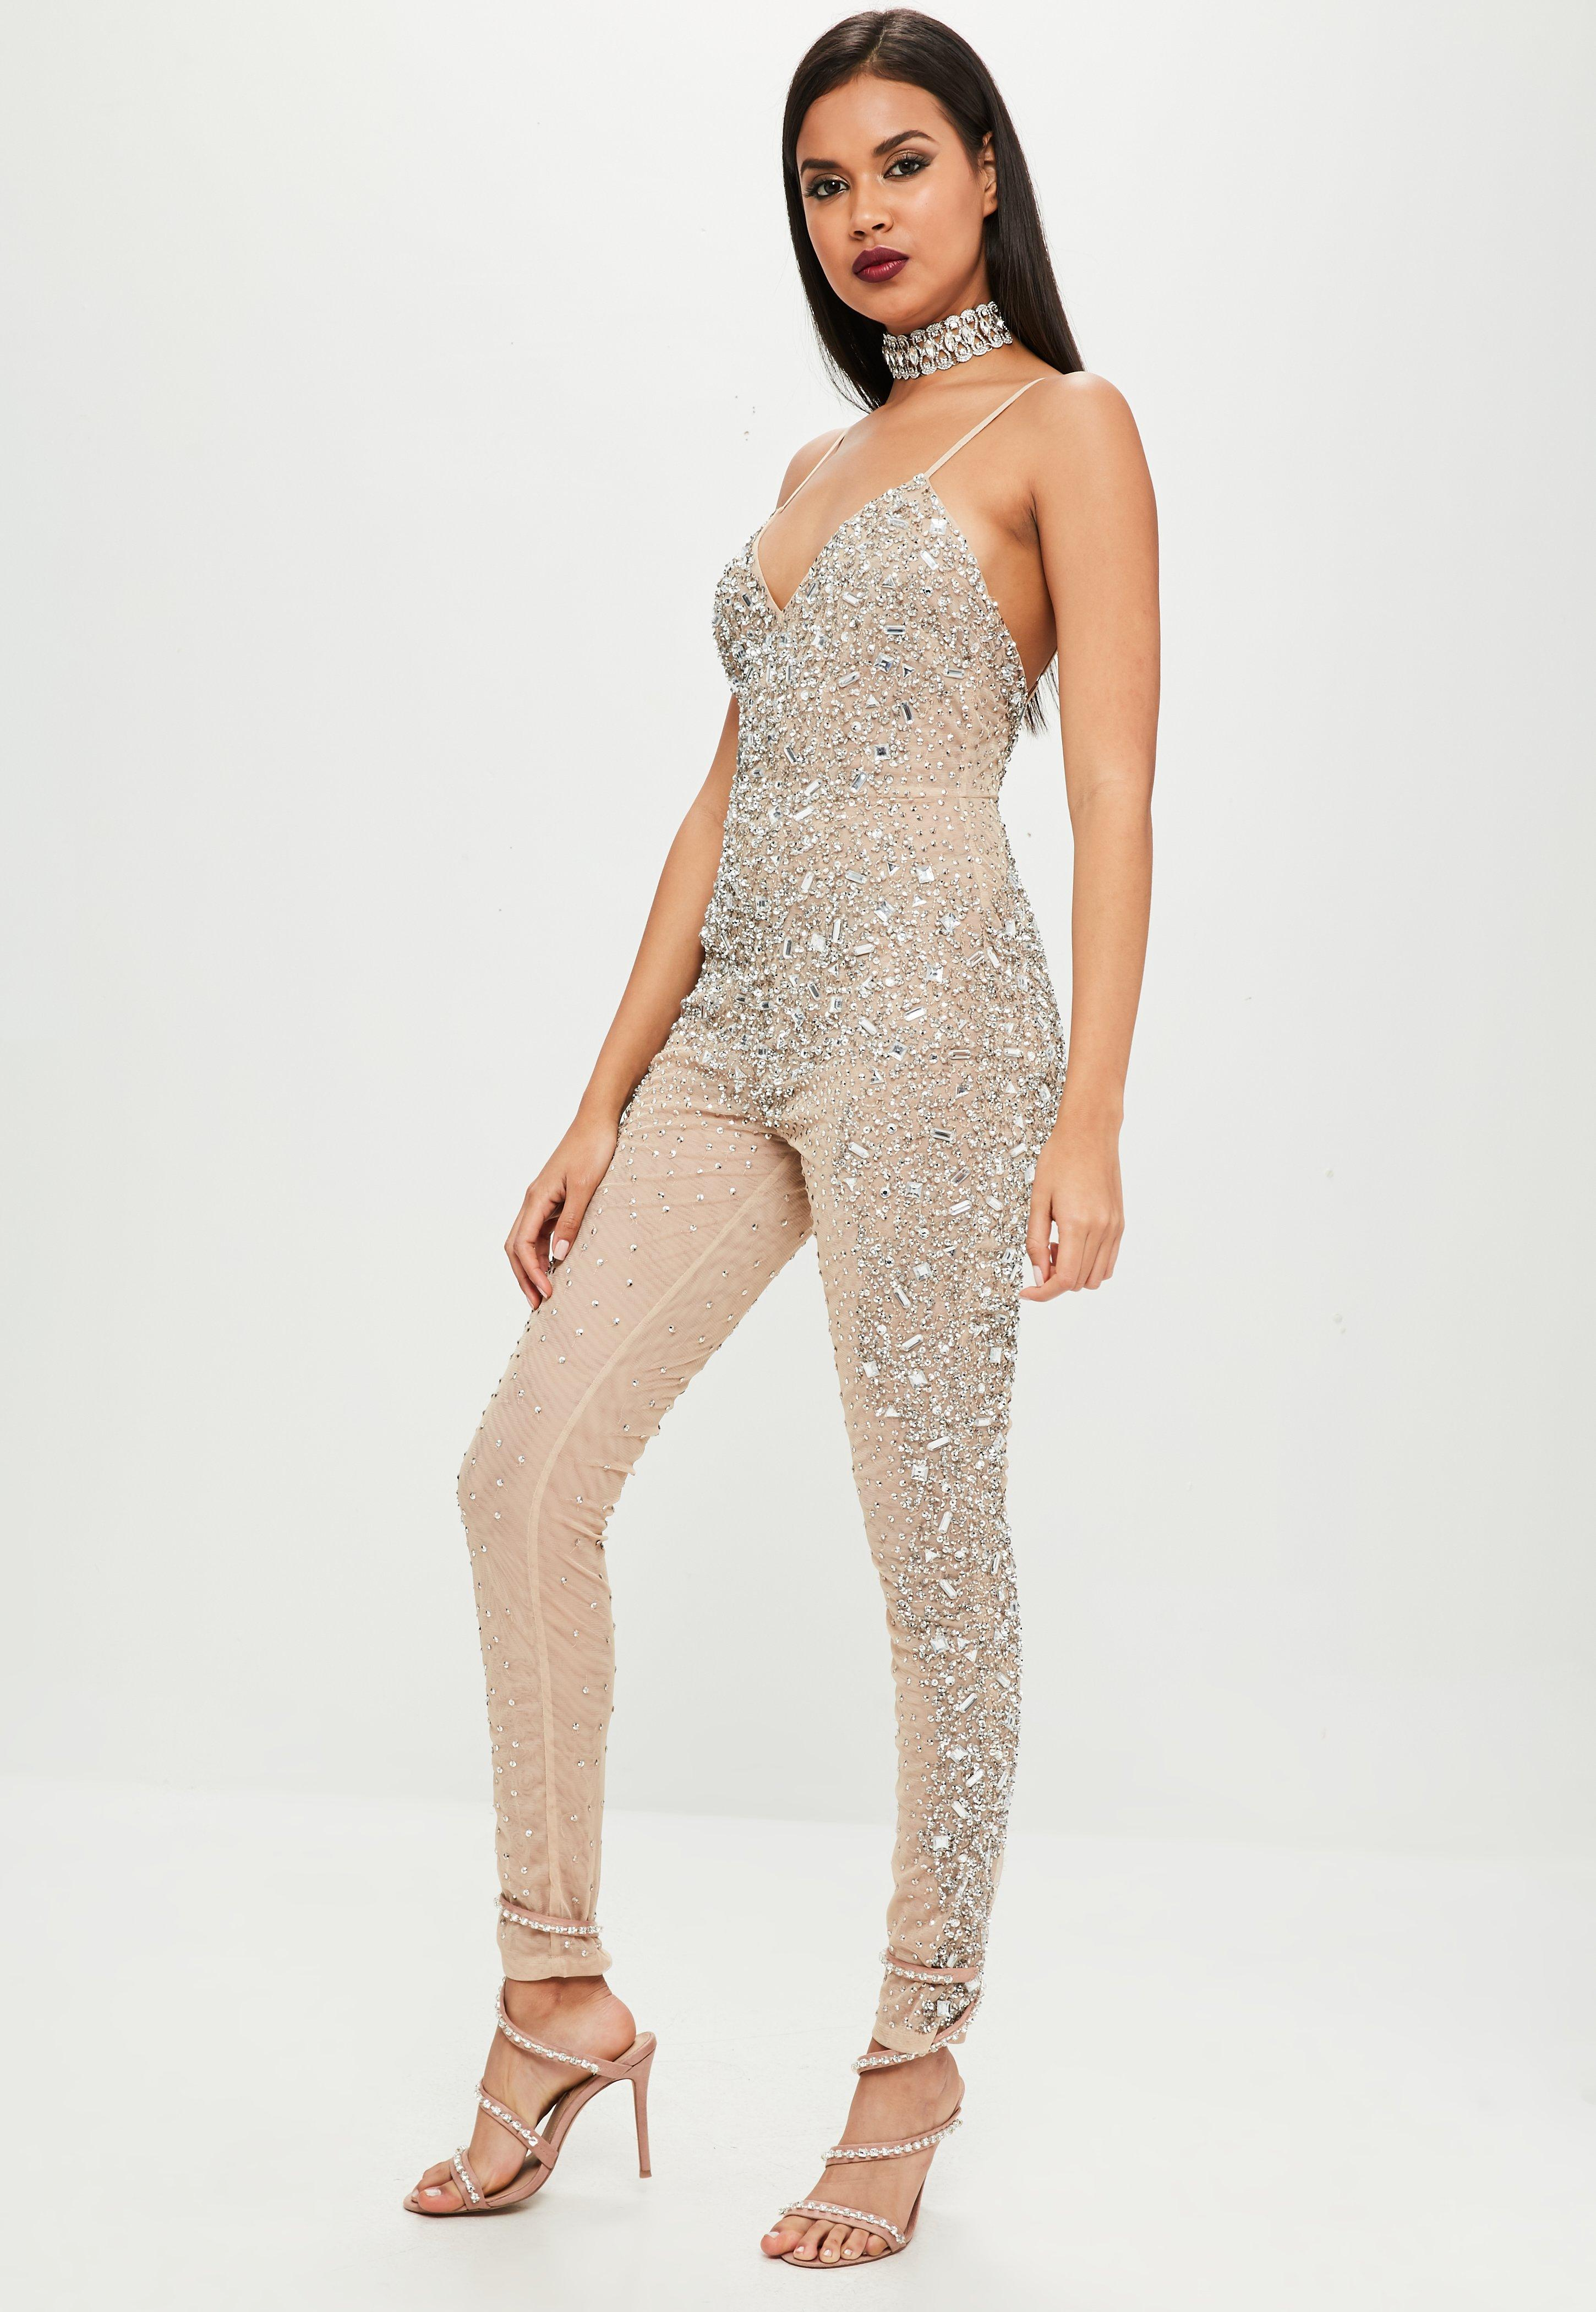 2afcfc9791ac Lyst - Missguided Carli Bybel X Nude Embellished Jumpsuit in Natural